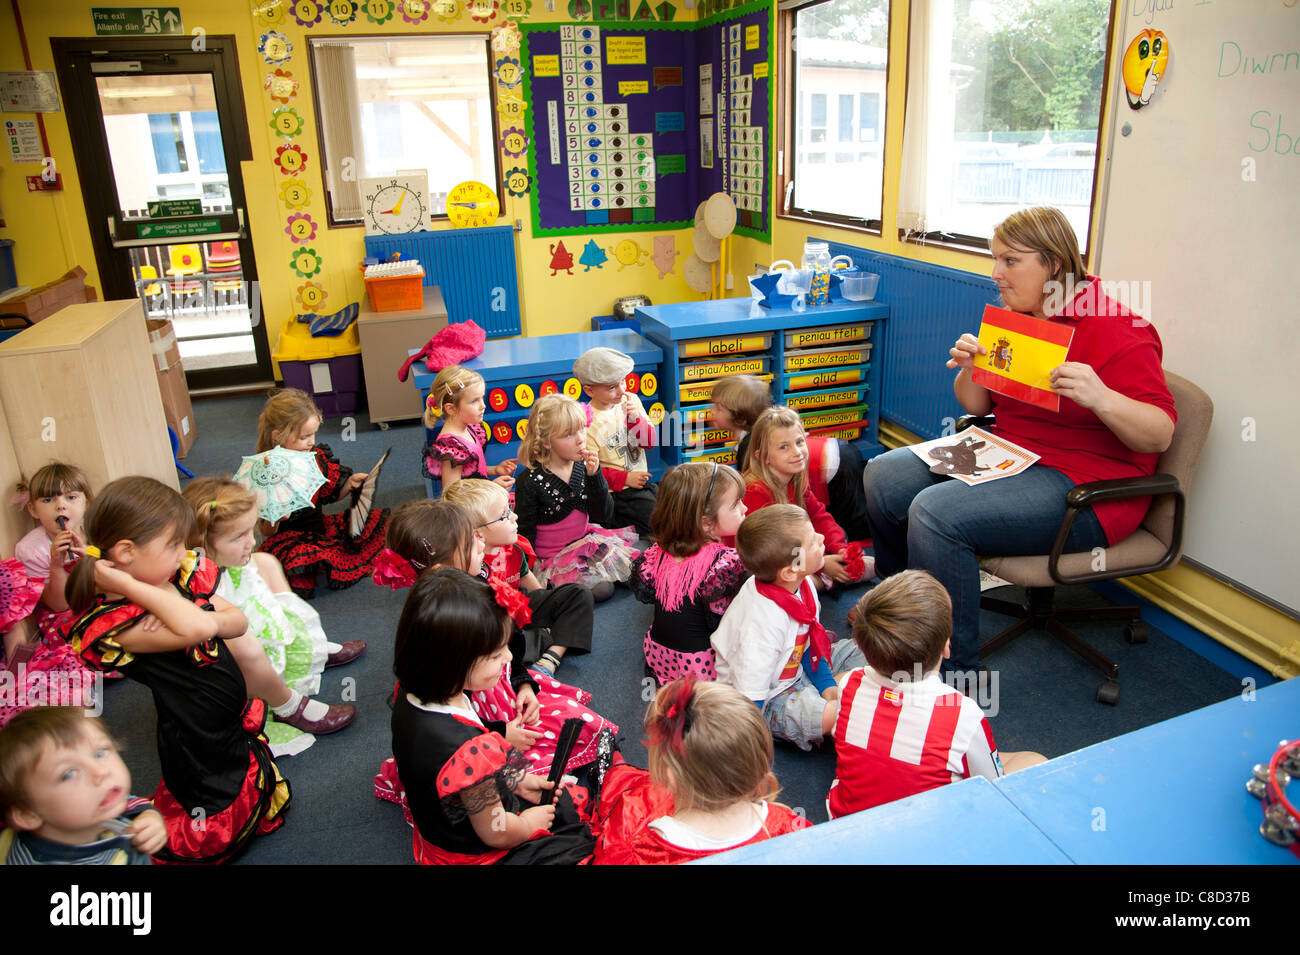 Classroom Ideas For Primary School : International day a woman teacher with children in class